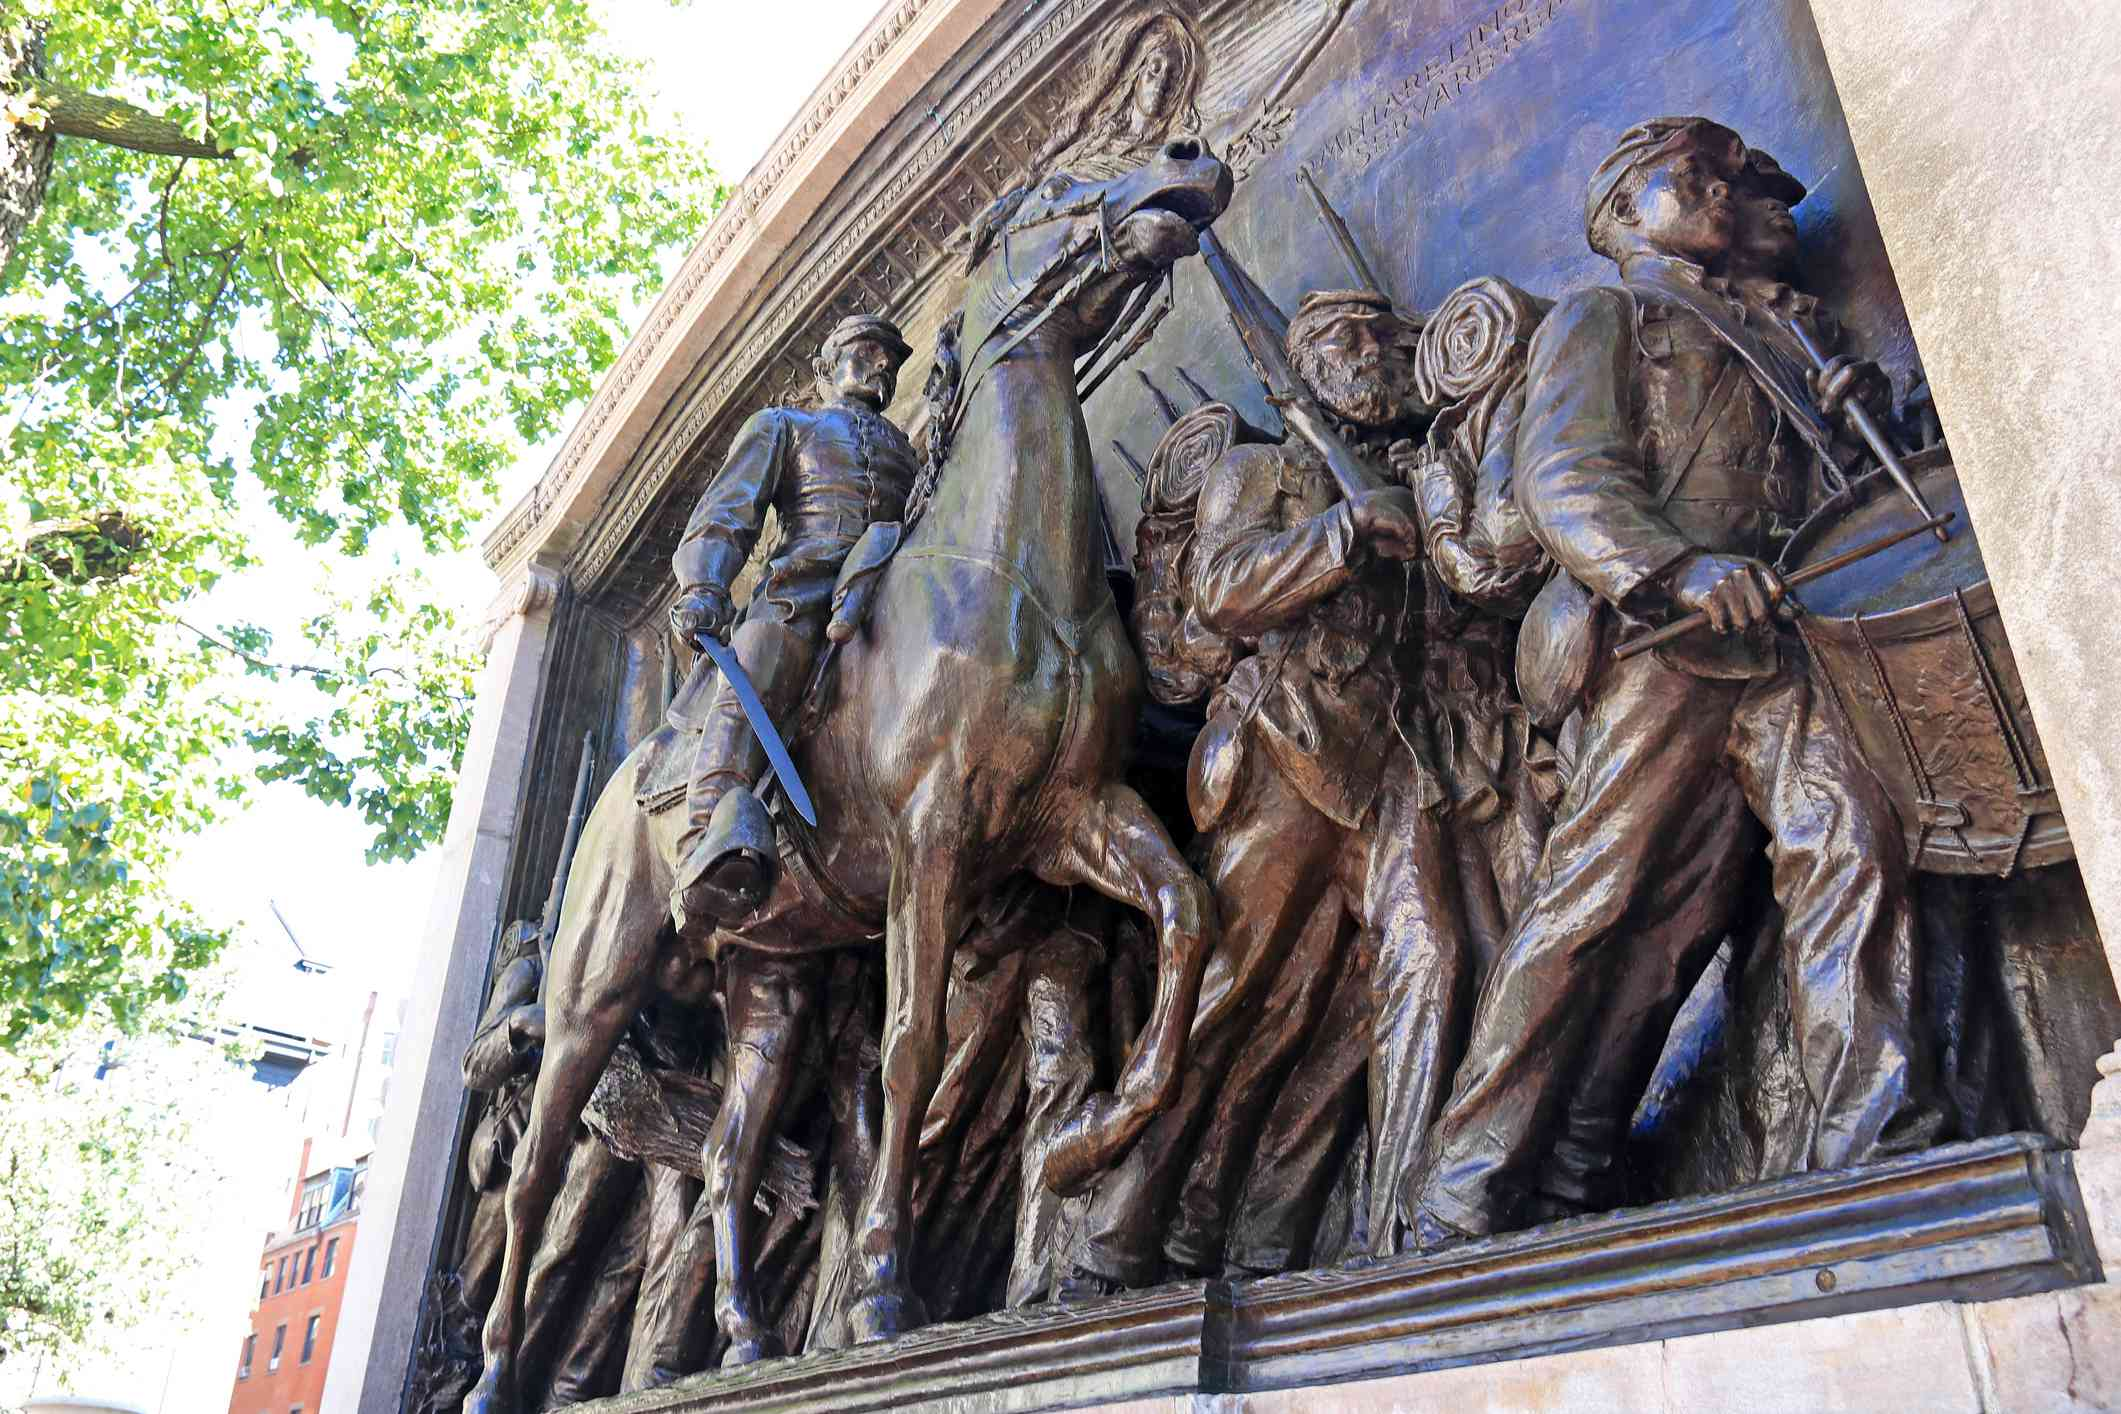 A bronze relief sculpture by Augustus Saint-Gaudens. This is a memorial to Colonel Shaw and the civil war's first African American Infantry, the 54th Massachusetts Infantry.